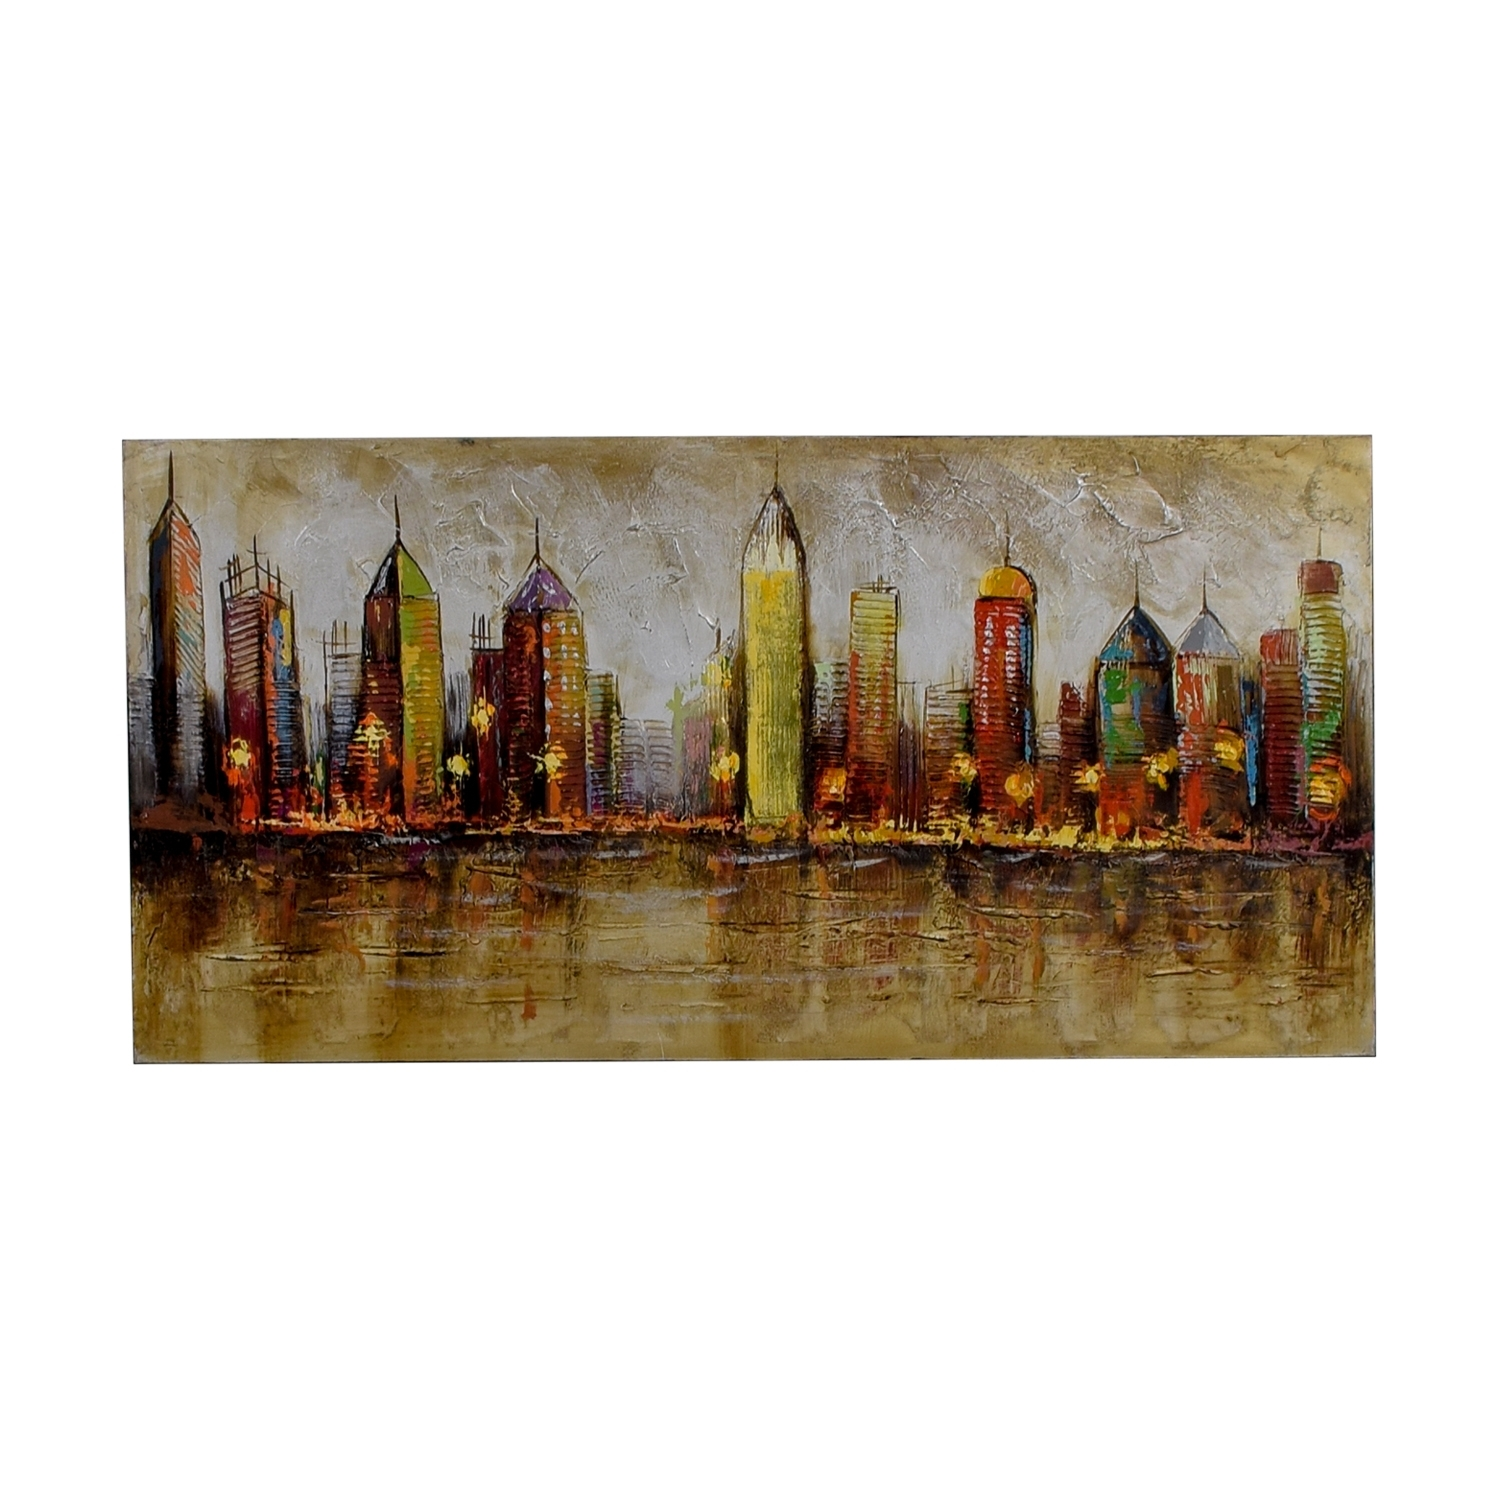 85% Off – Thomas Mangelsen Thomas Mangelsen November Snow Bald With Regard To Most Popular Pier One Abstract Wall Art (View 2 of 20)